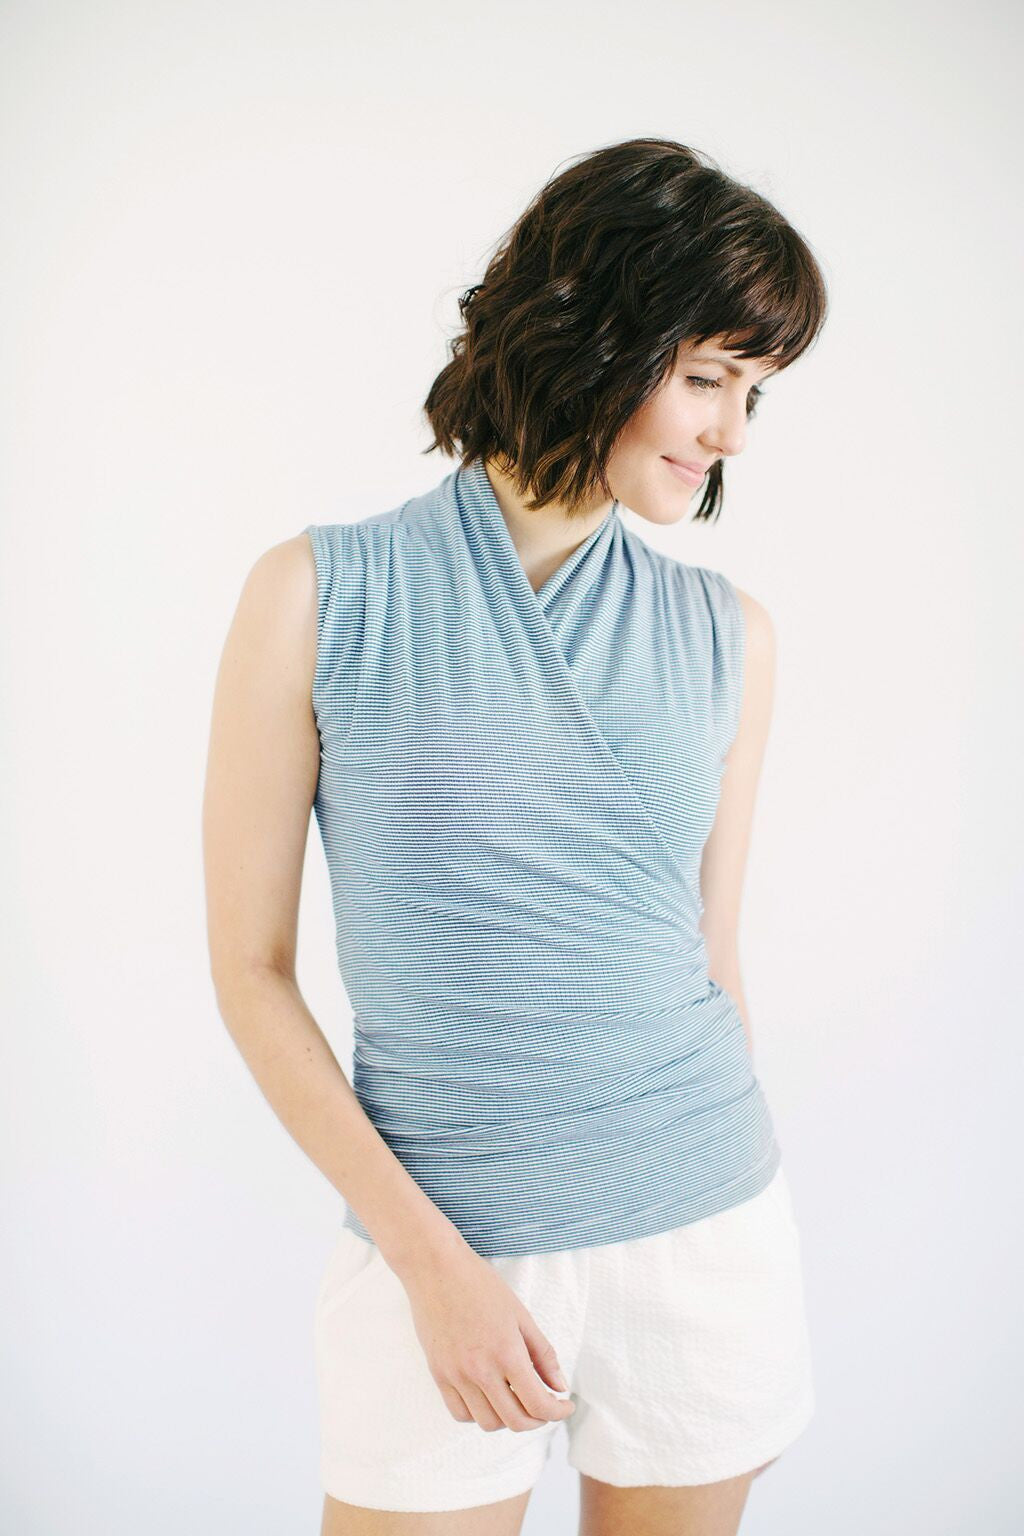 KOKOON Separates High Tide Wrap Tank